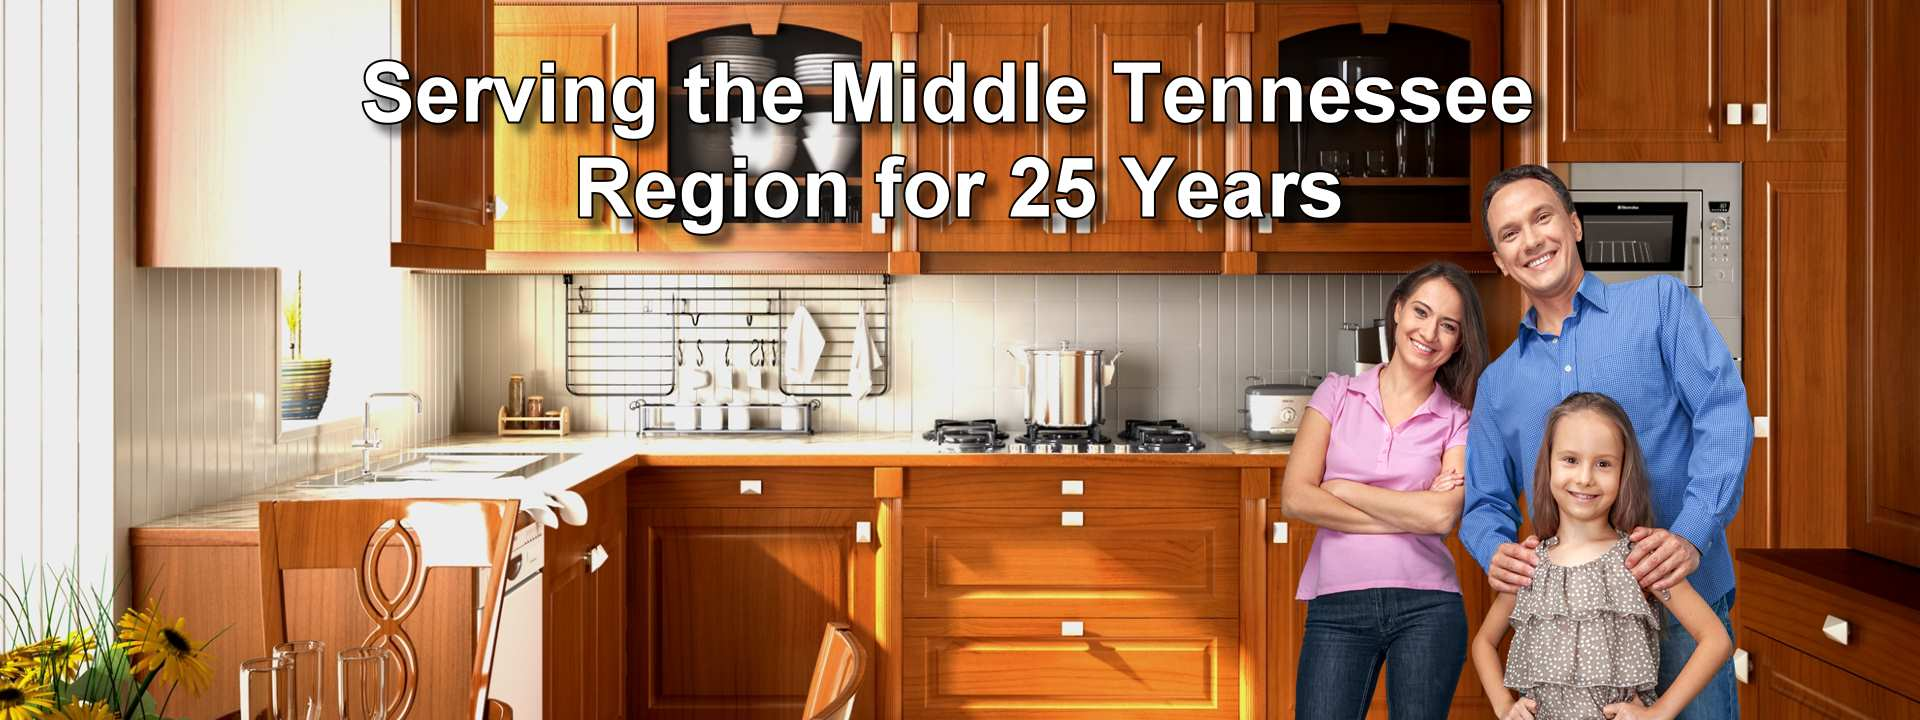 Murfreesboro Tn Home Construction Remodeling Company Best Choice Home Remodeling Renovation